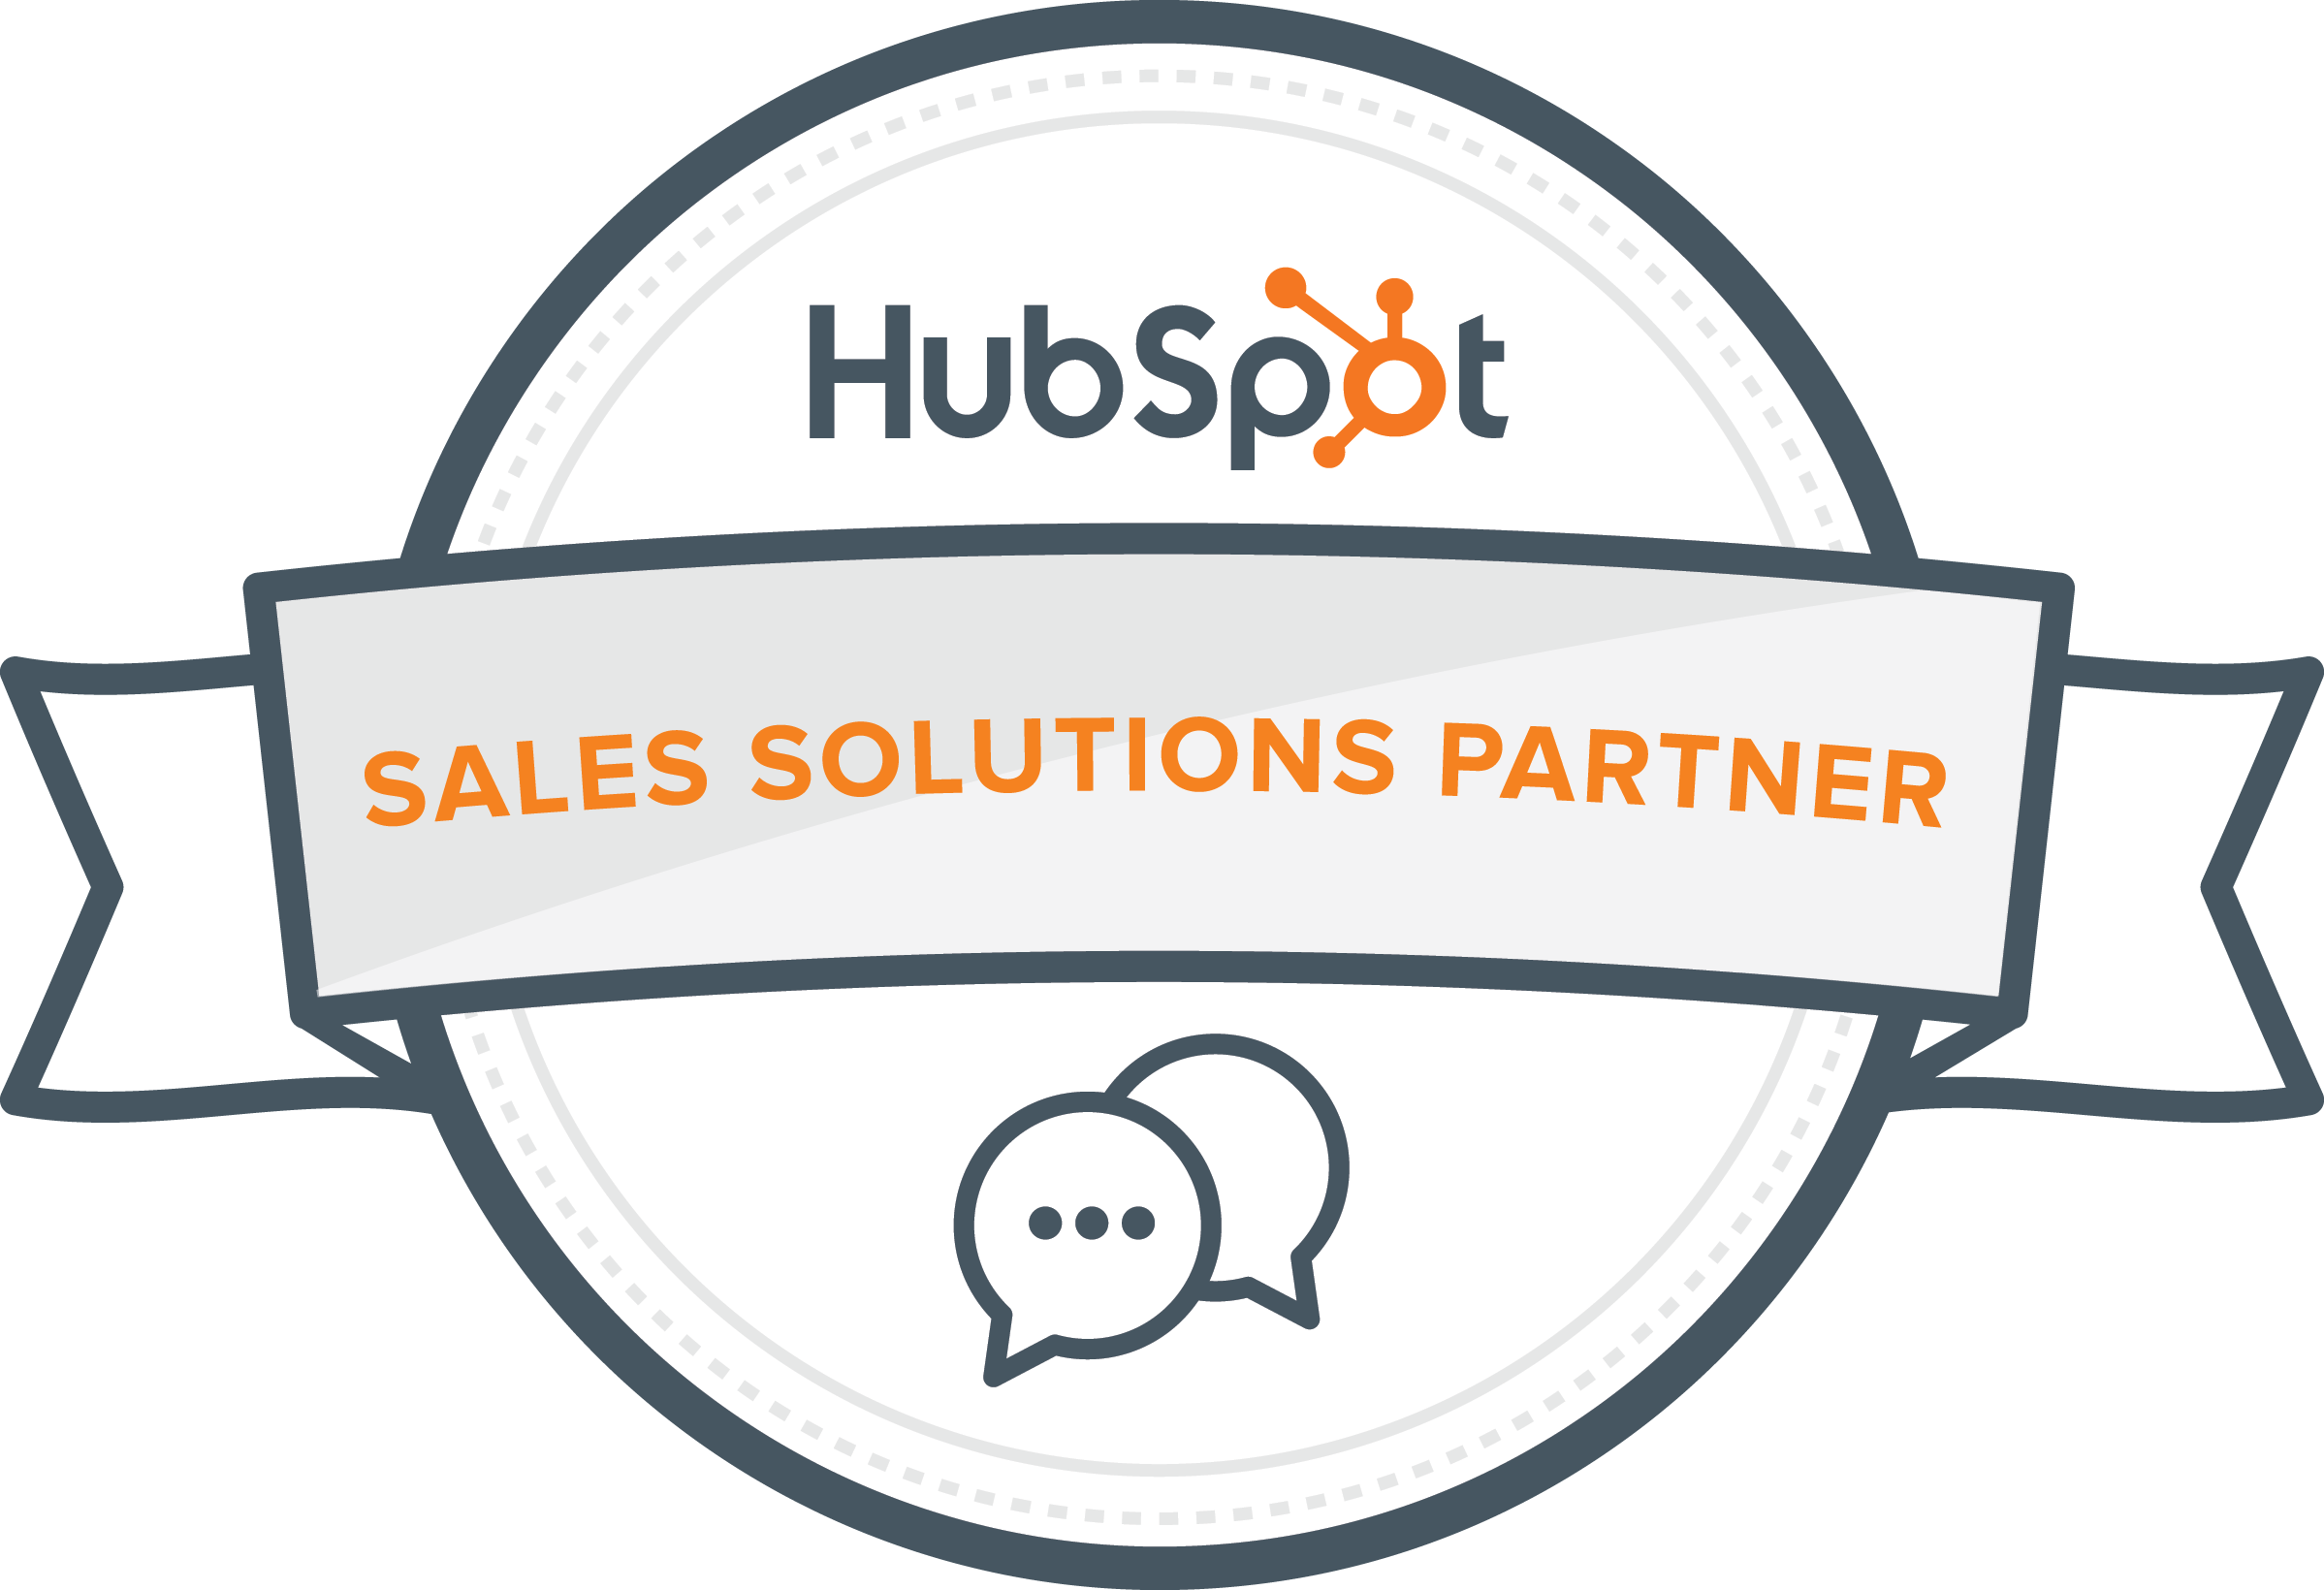 Online Marketing Business HubSpot solution partner